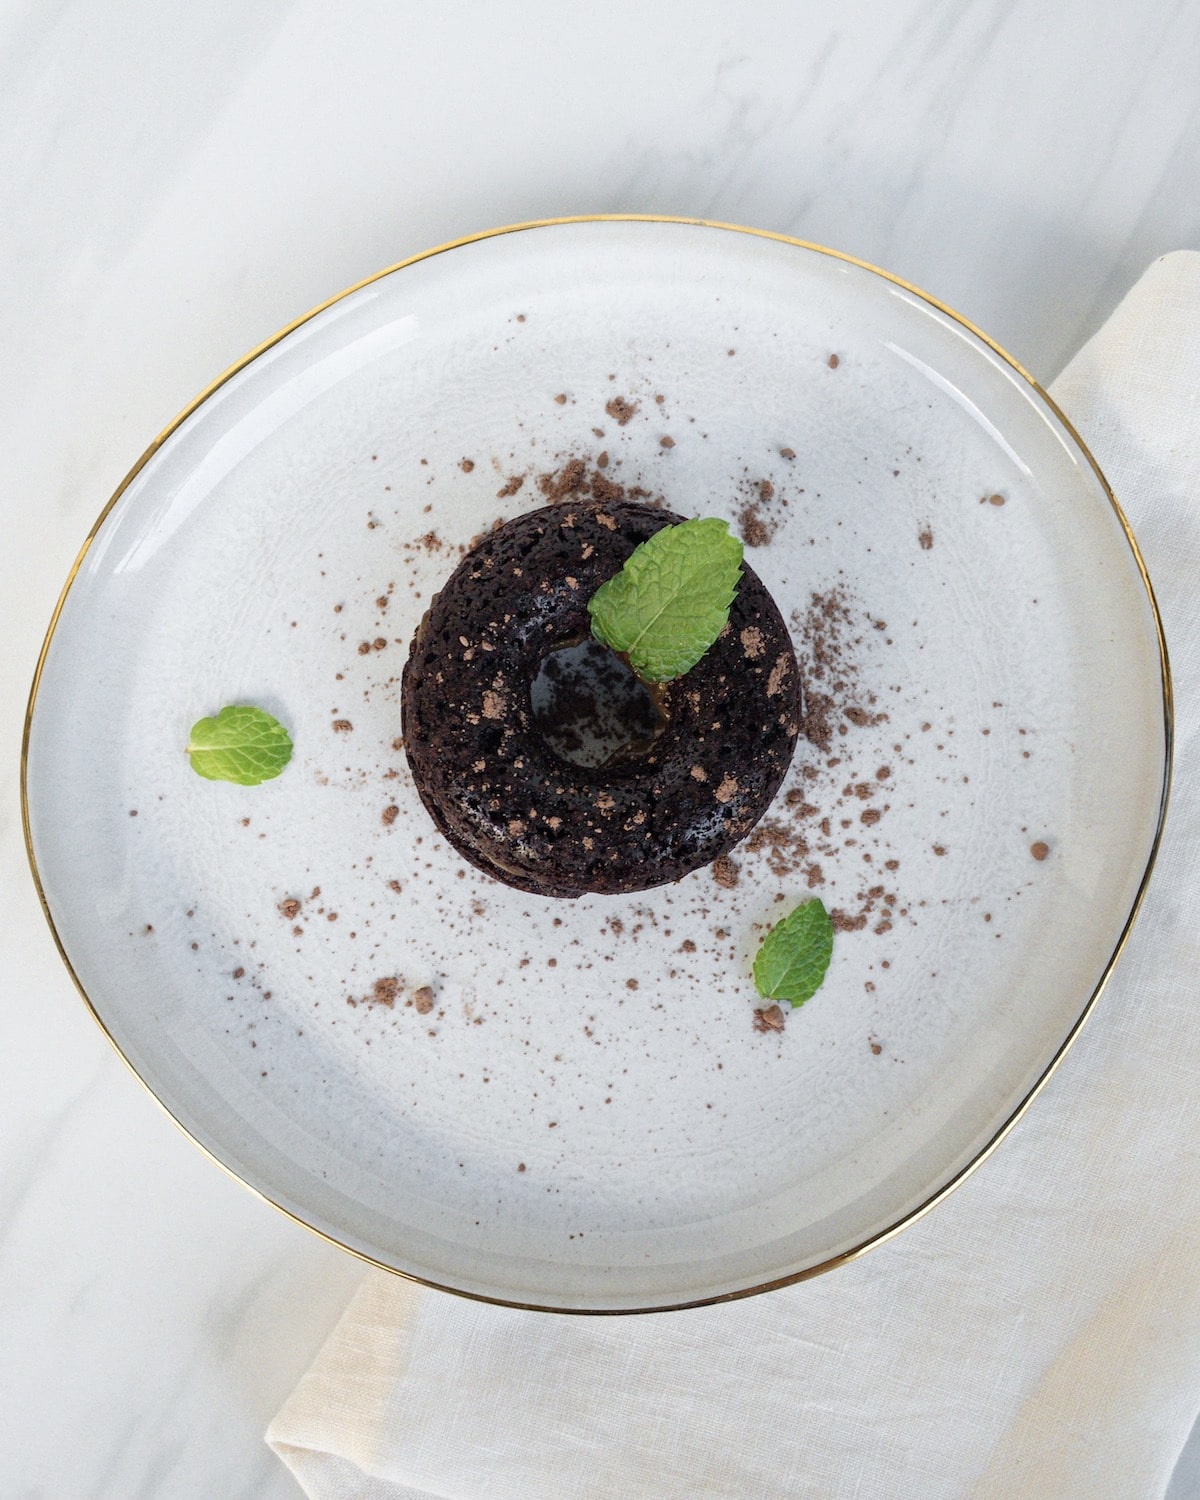 top shot of finished donut on plate with mint leaves